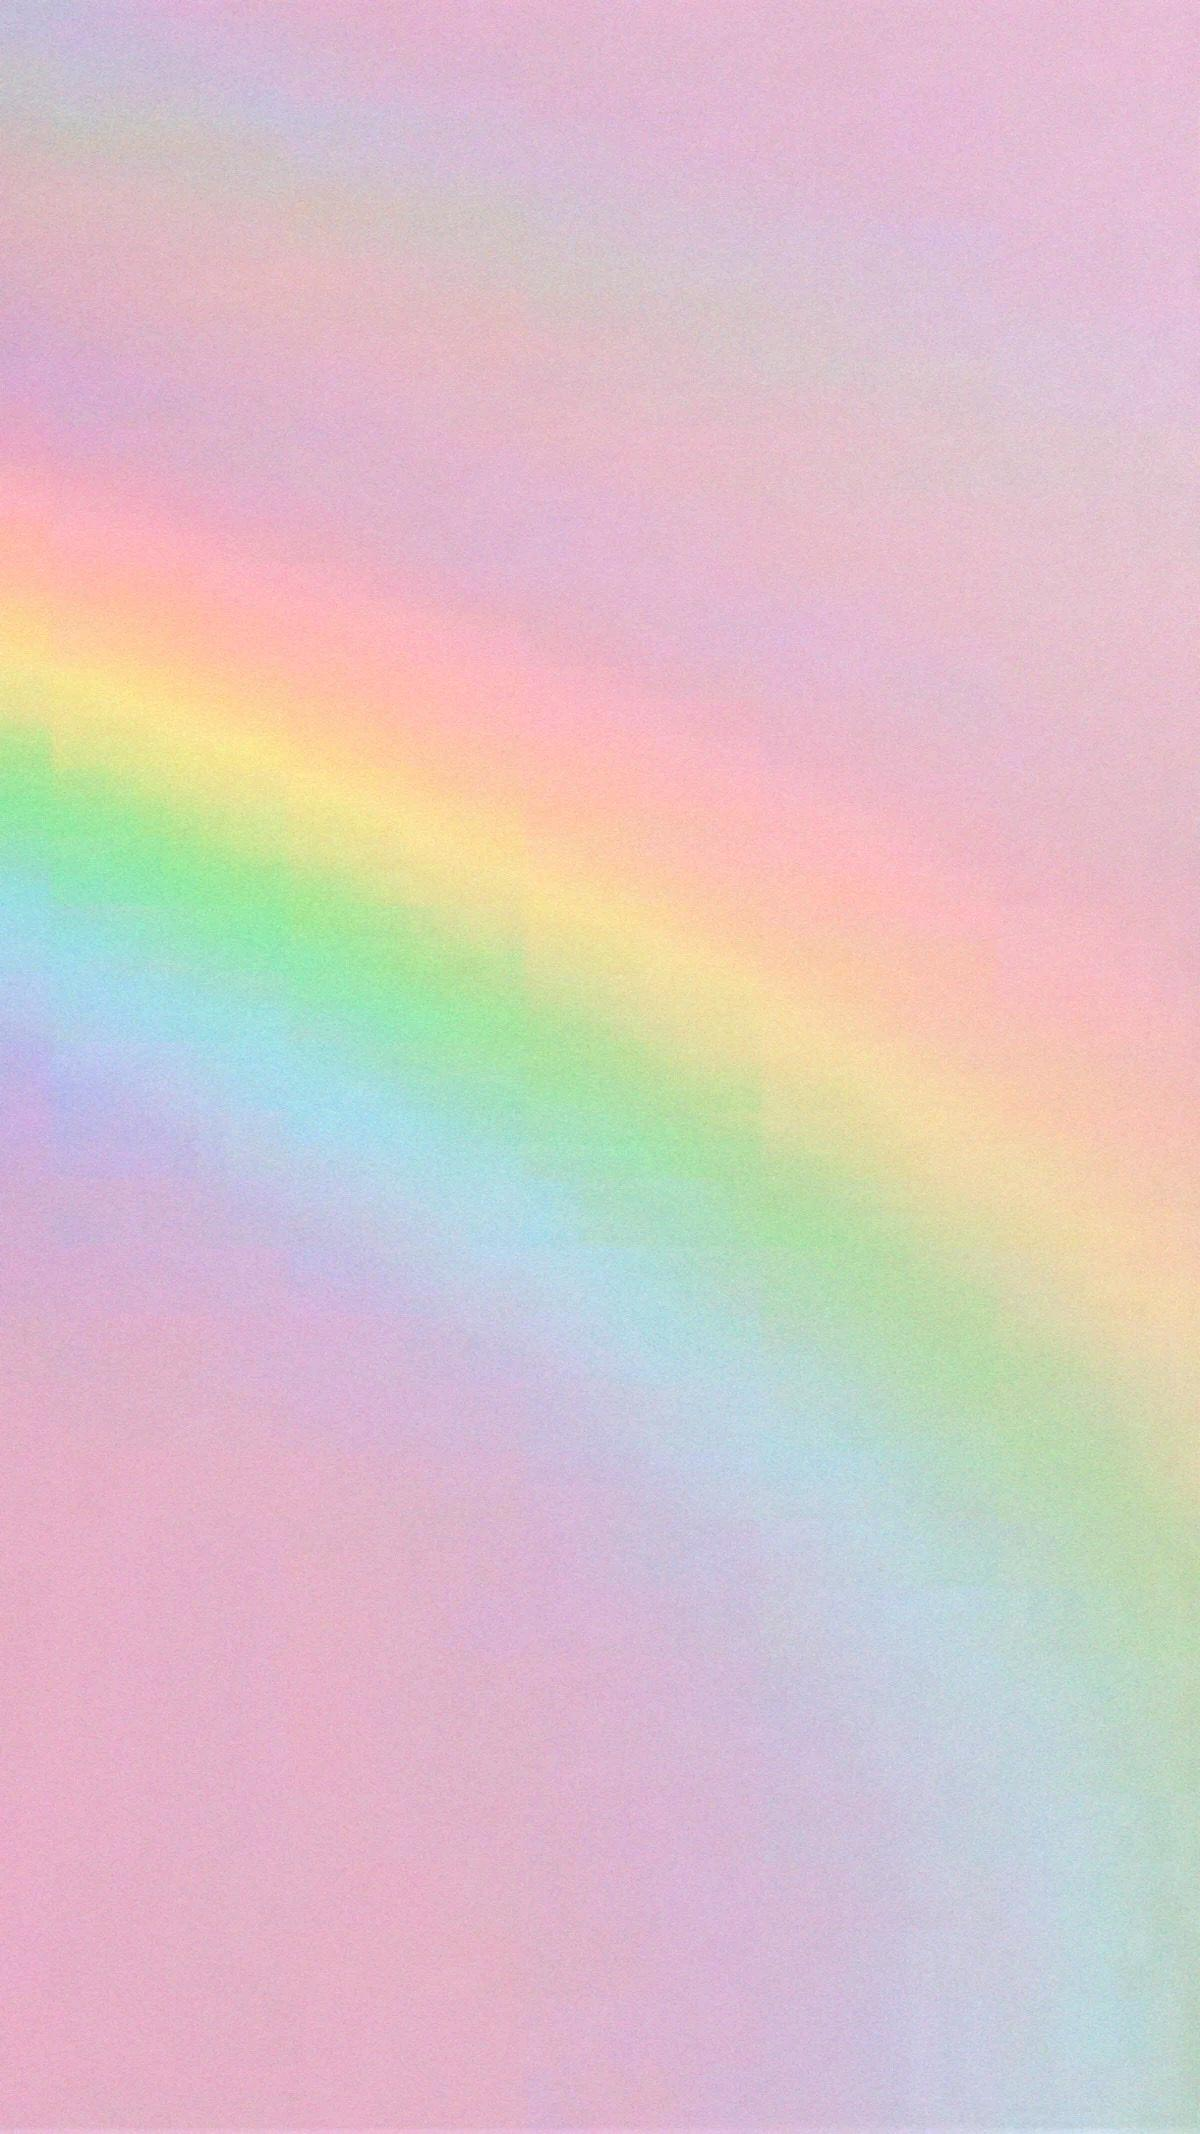 New Rainbow Wallpaper For Android Apk Download